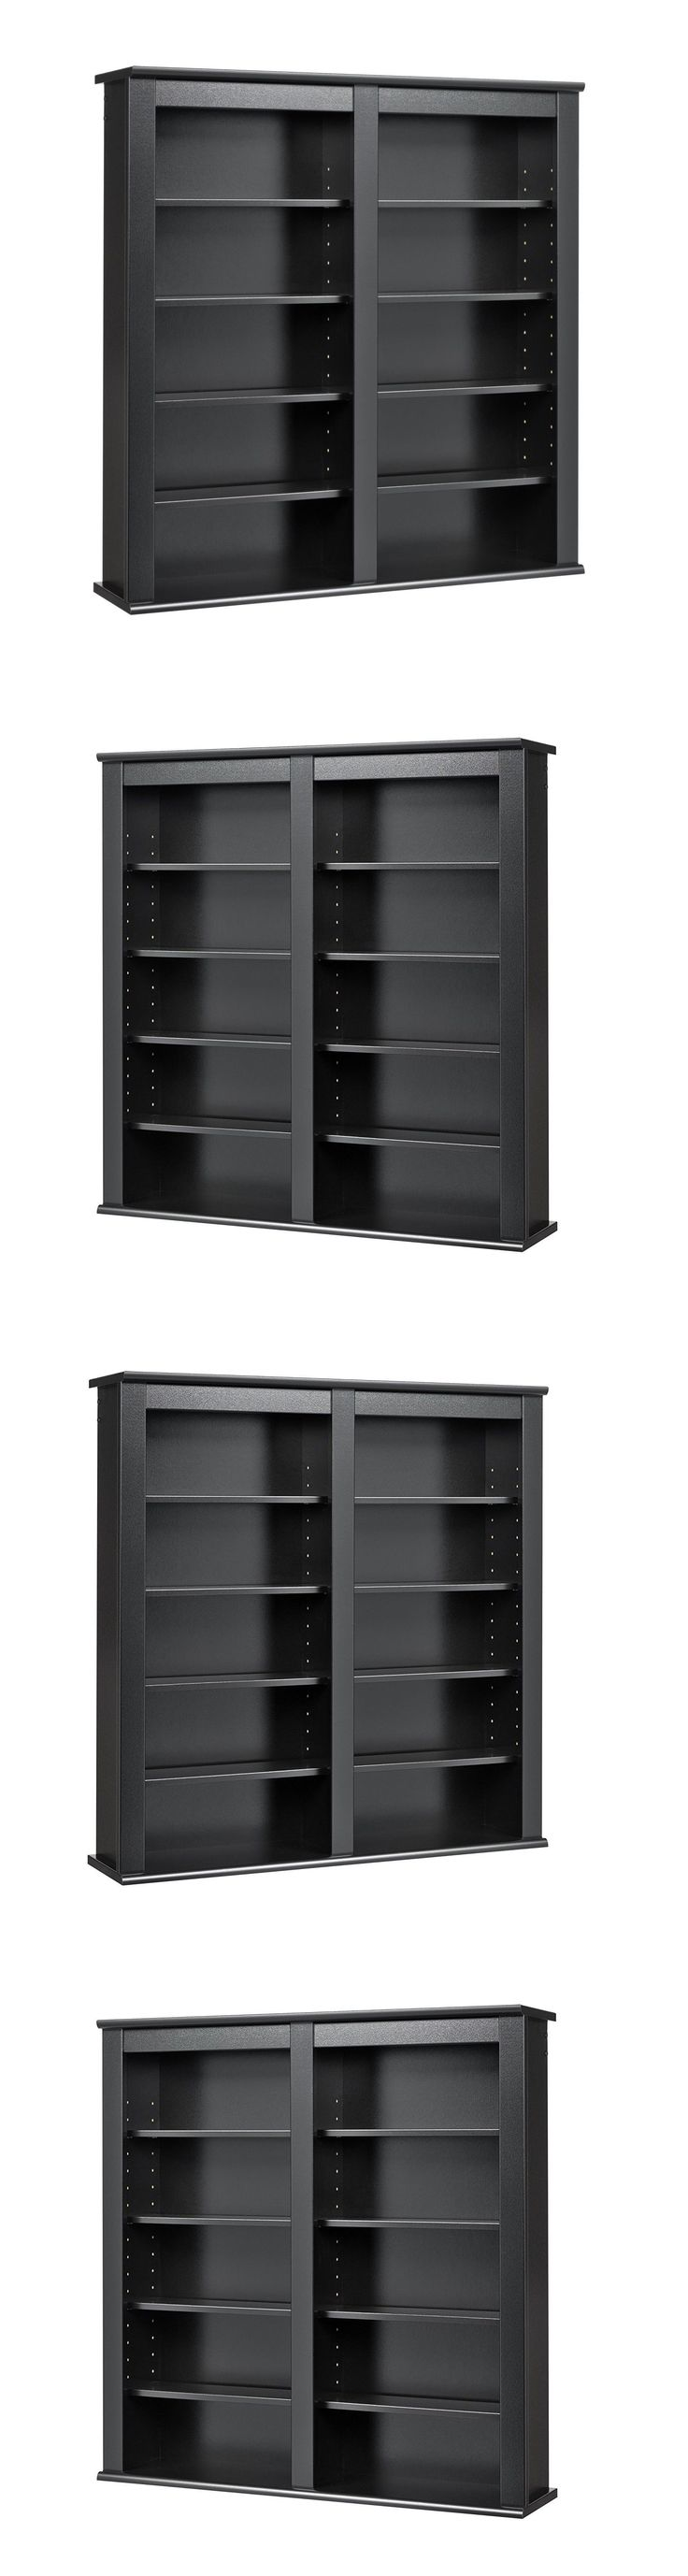 CD and Video Racks 22653: Media Cabinet Wall Mount Cd Dvd Storage Shelves Entertainment Unit Black New -> BUY IT NOW ONLY: $108.82 on eBay!